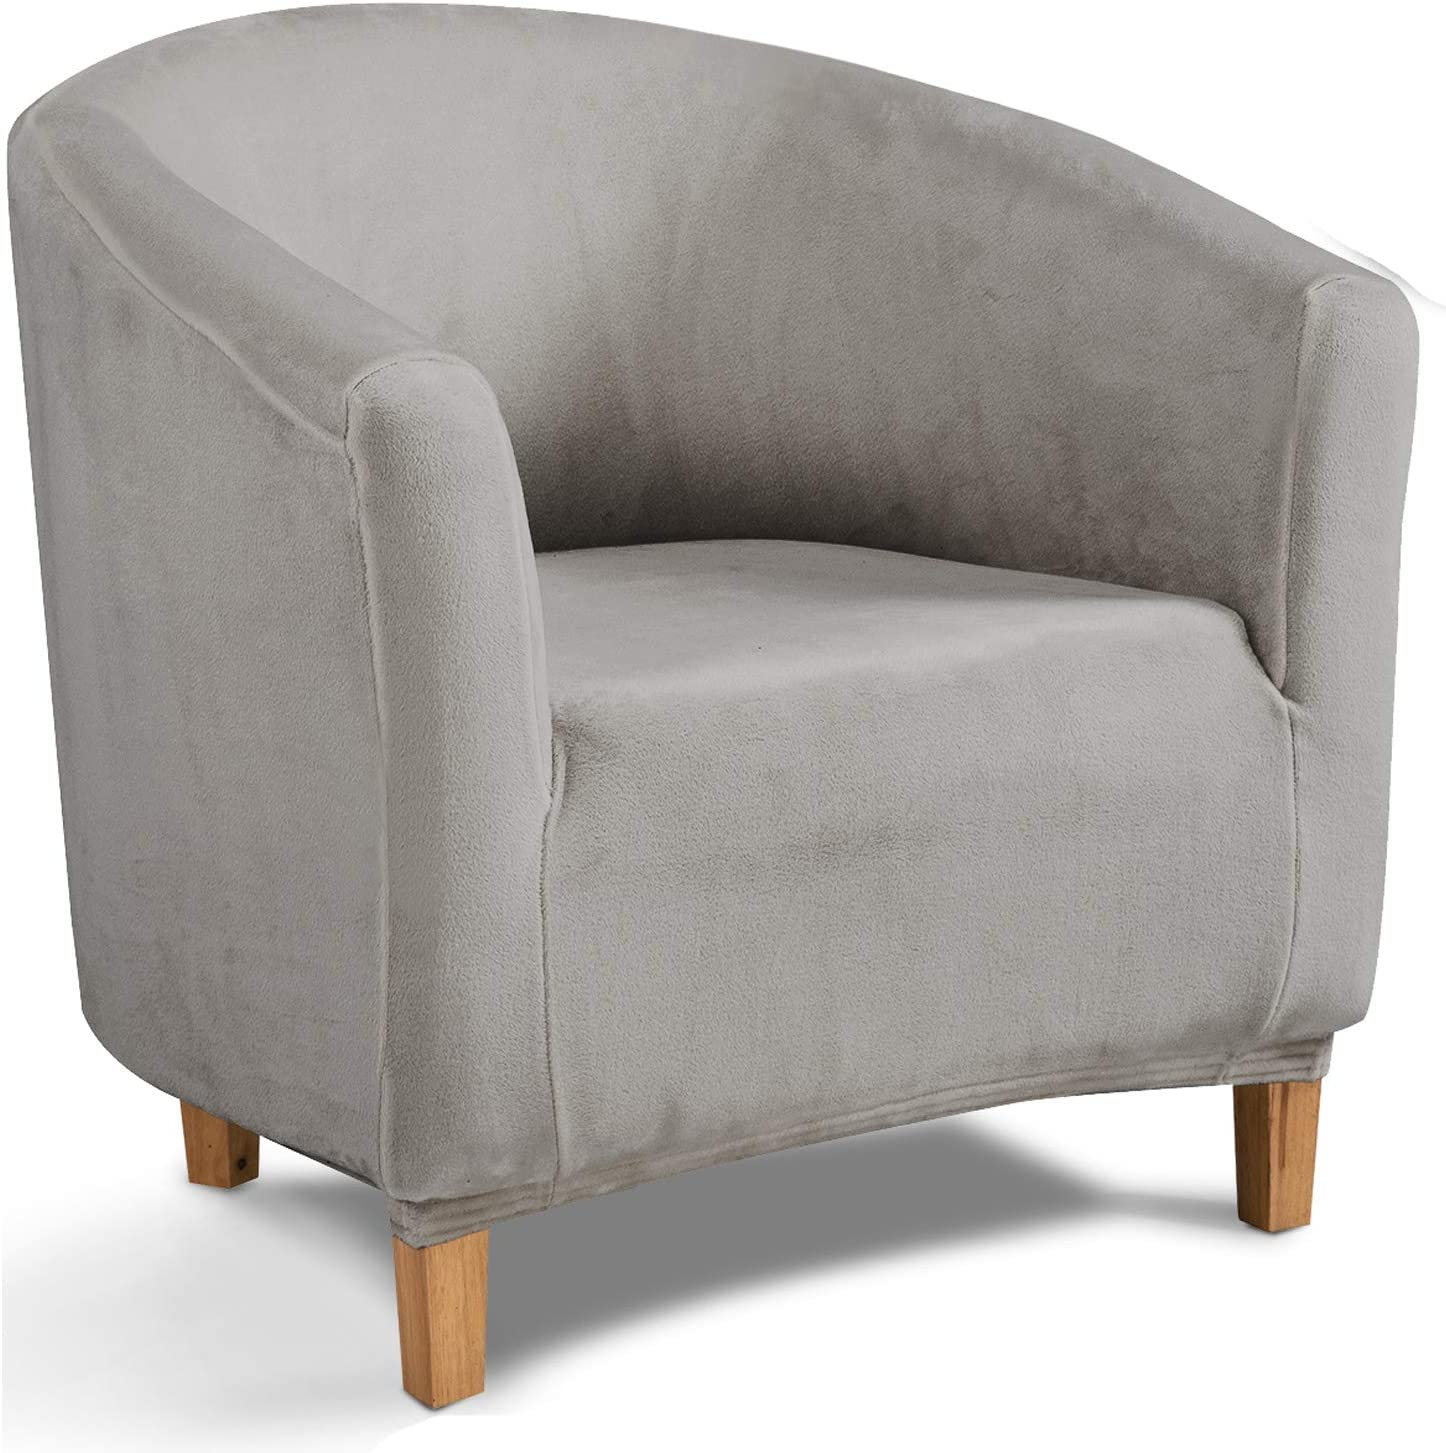 TIANSHU Velvet Tub Chair Cover, Stretch Armchair Slipcovers, Club Chair Covers, Non-Slip Couch Cover Furniture Protector for Dining Living Room Office Reception Chair(Tub Chair, Velvet Light Gray)